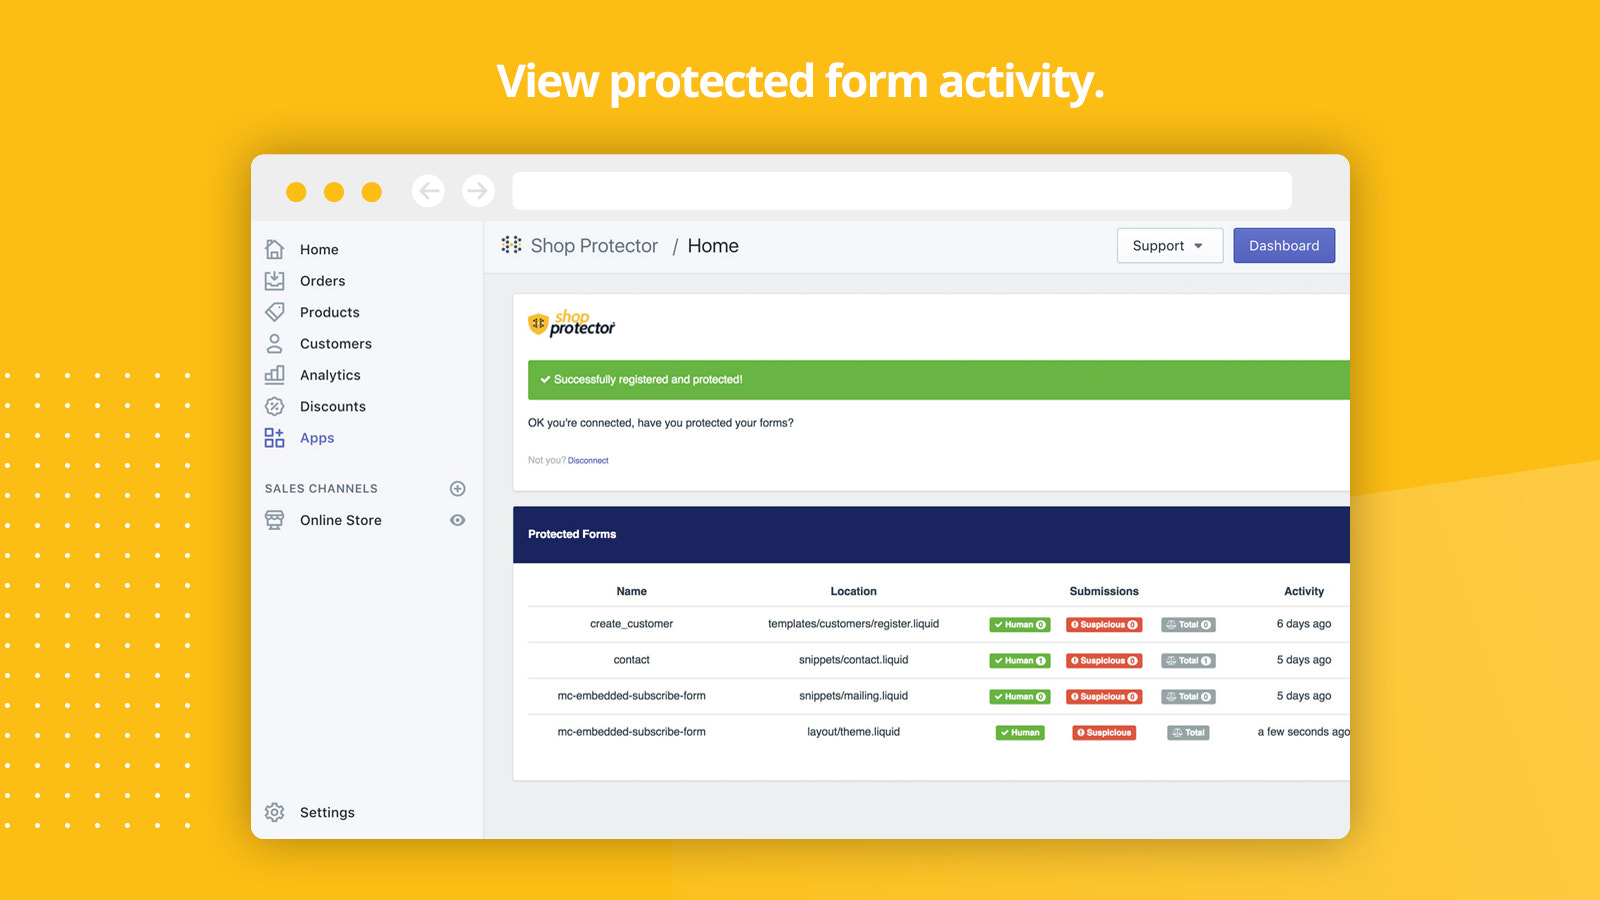 View all your protected form activity from bots.